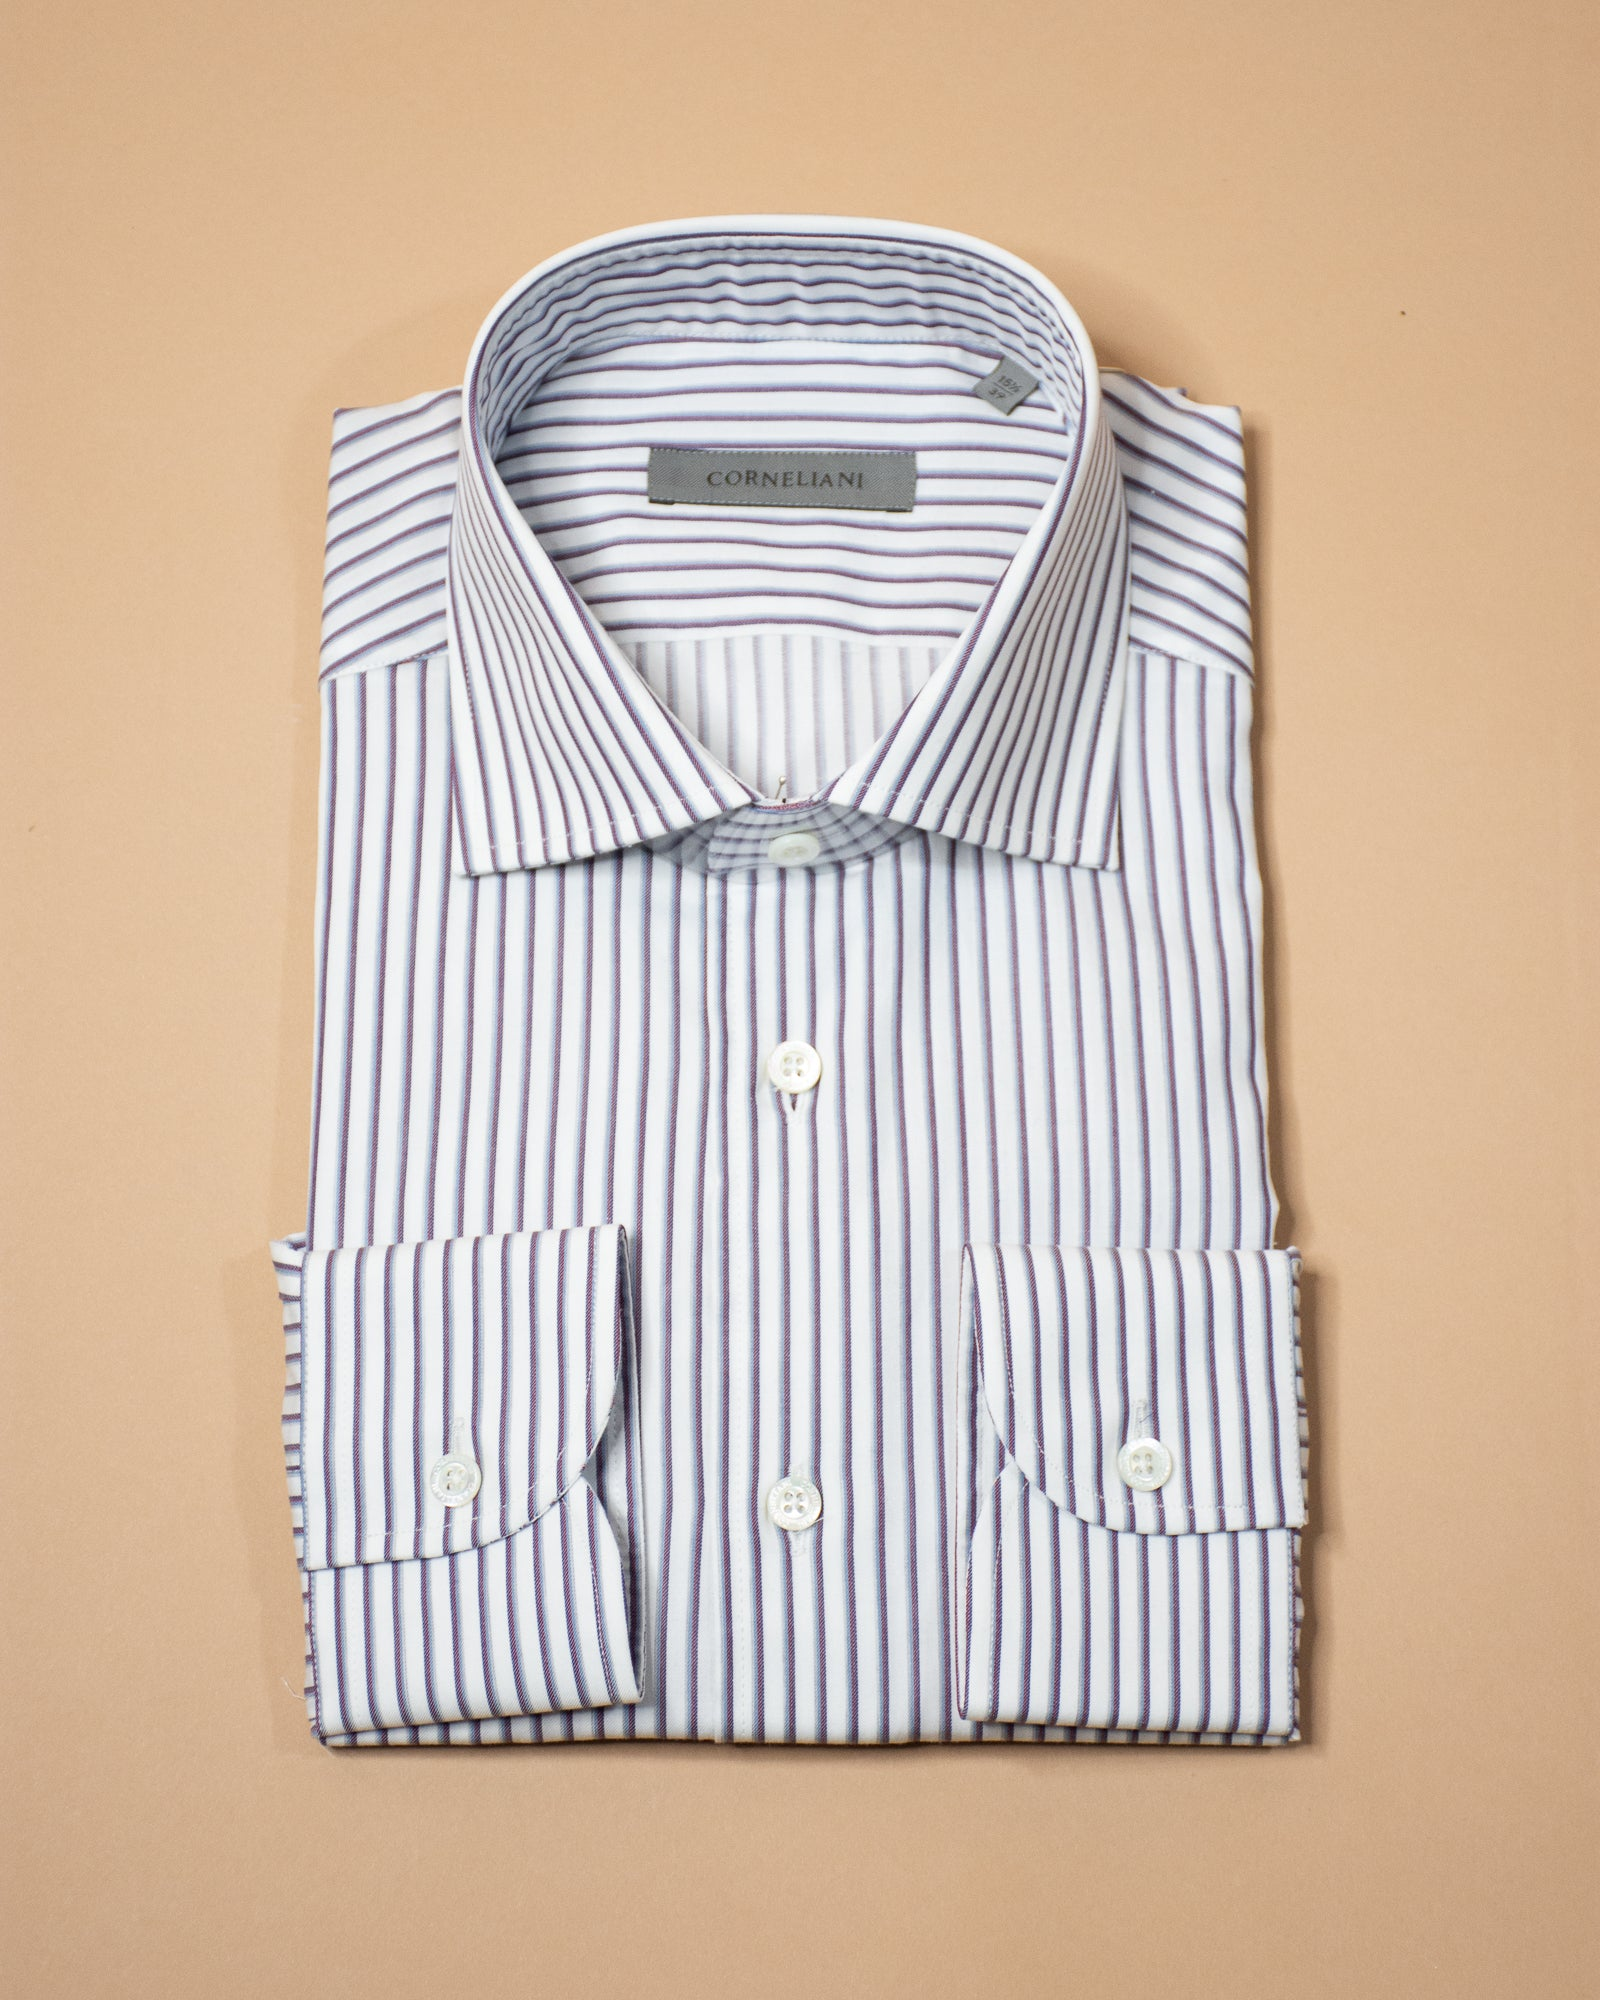 CORNELIANI Stripe Pattern Shirt